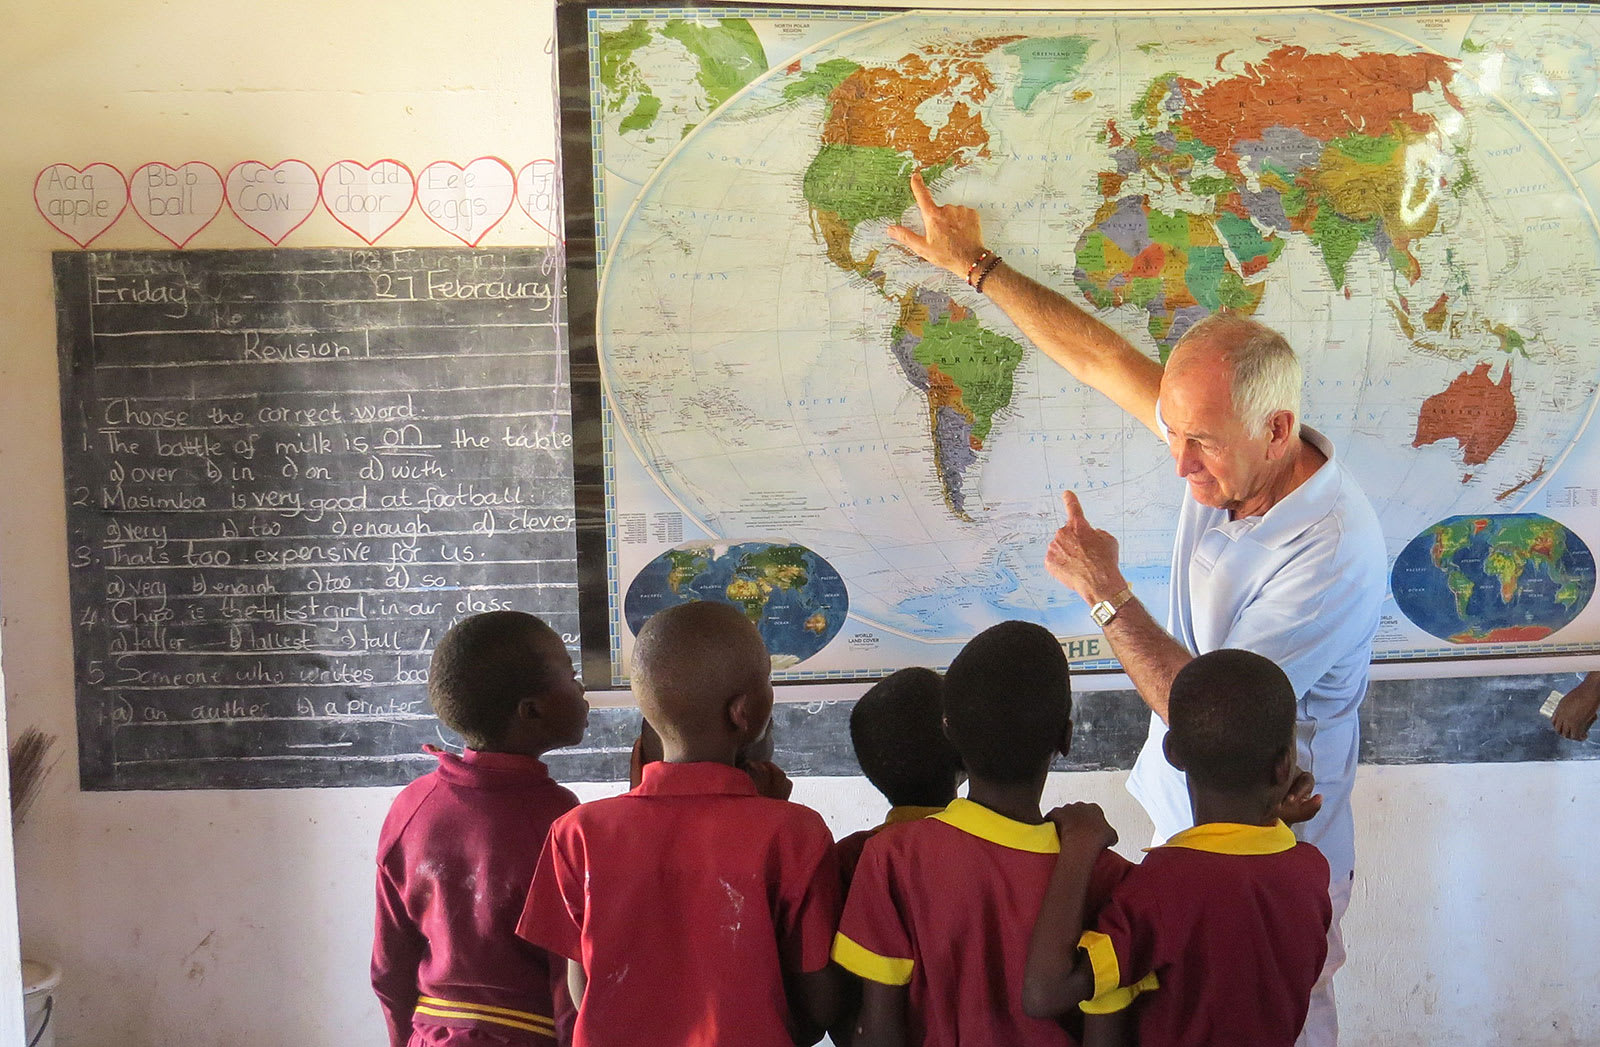 Traveler pointing to a world map in Zimbabwe school room